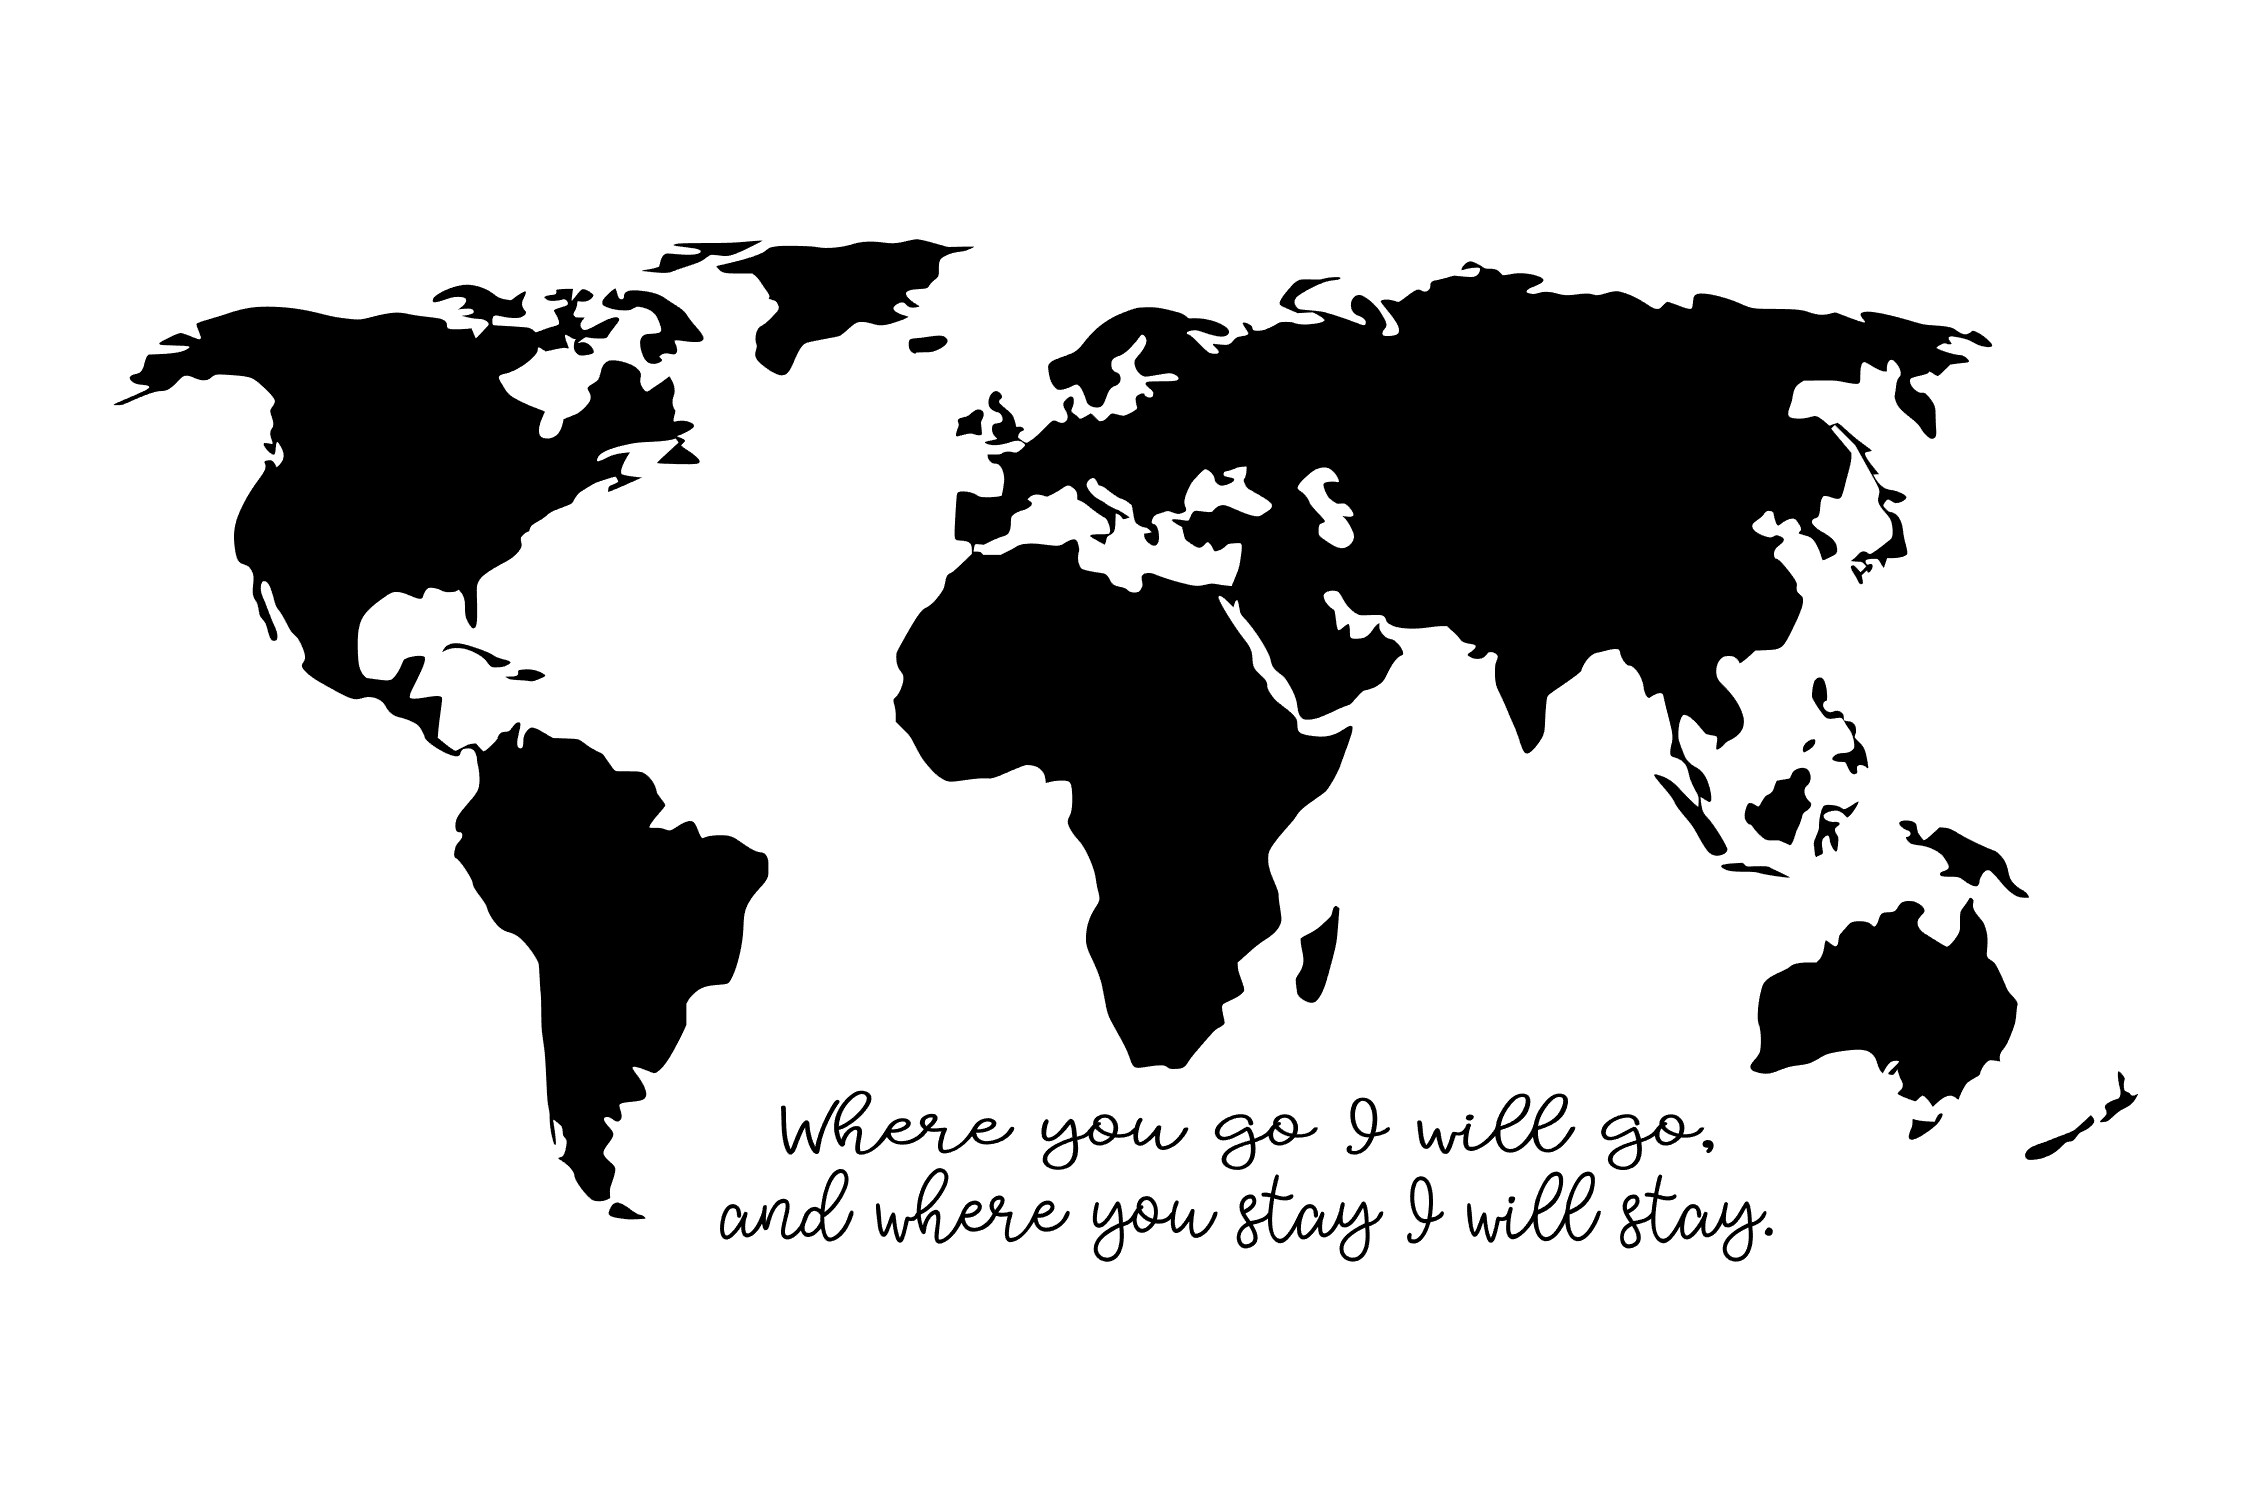 Where you go I will go - World Map - SVG PNG EPS example image 2